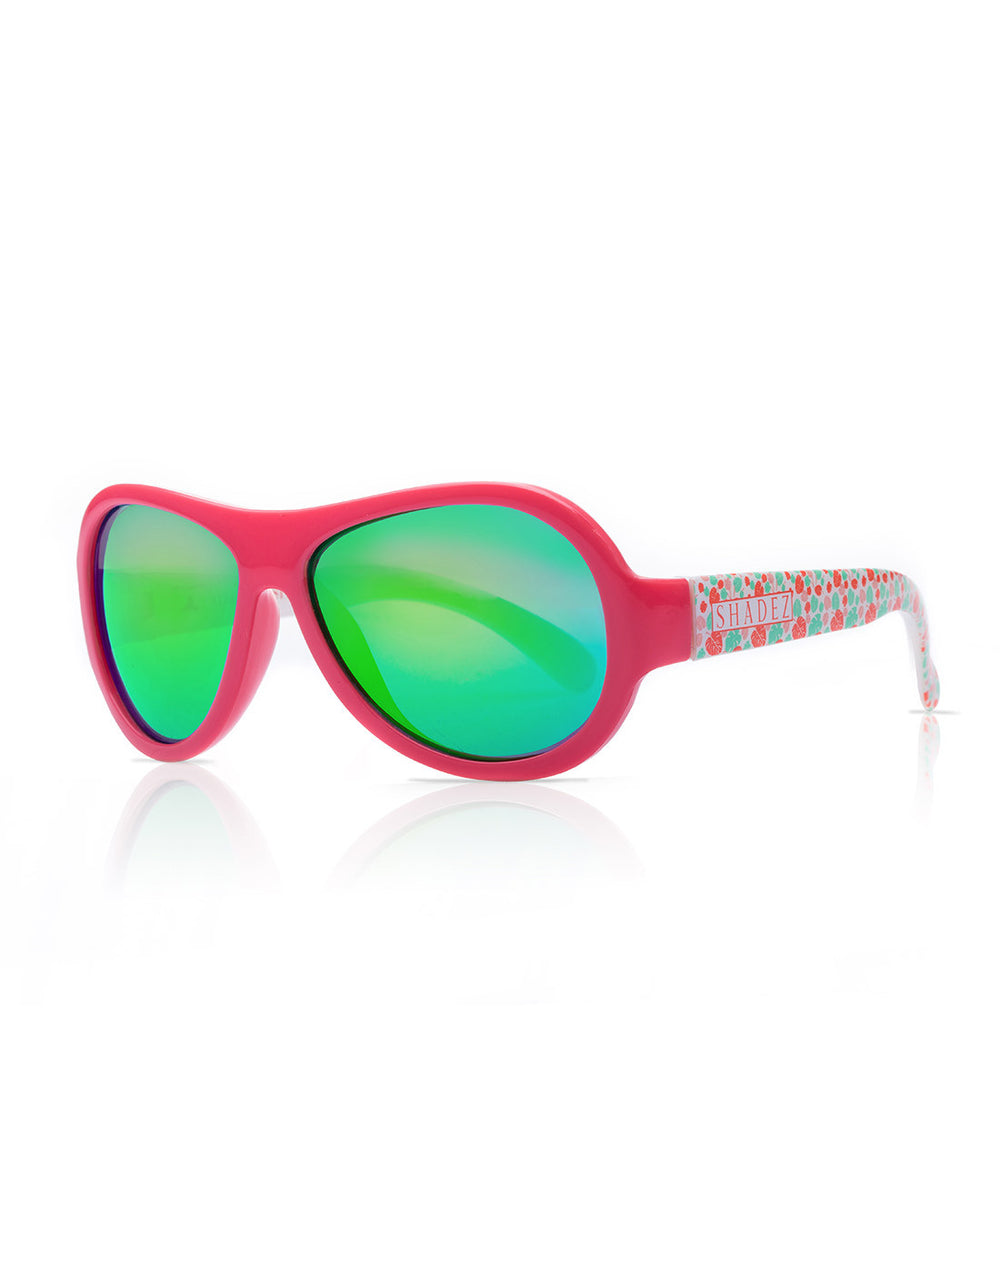 Shadez Sunglasses Leaf Print Pink 3-7yrs